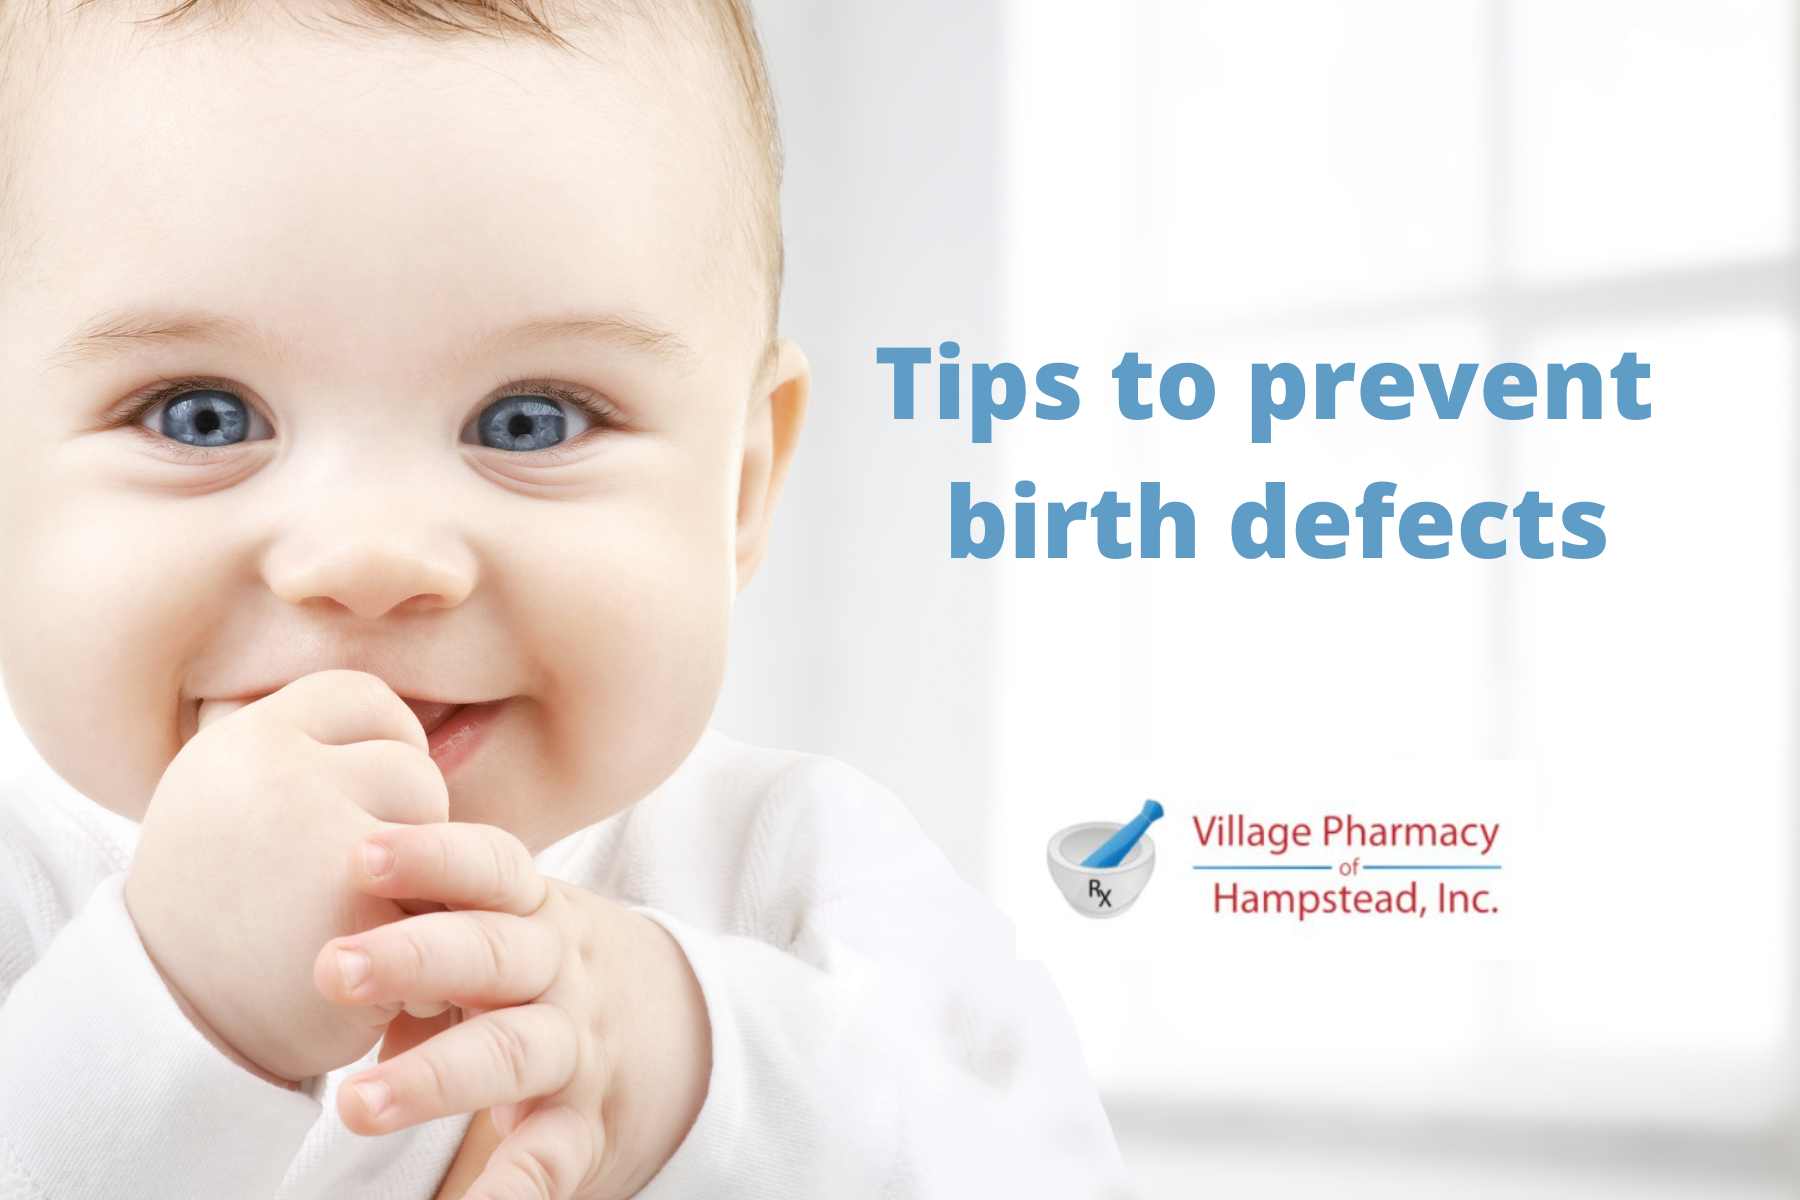 Copy-of-Tips-to-prevent-birth-defects